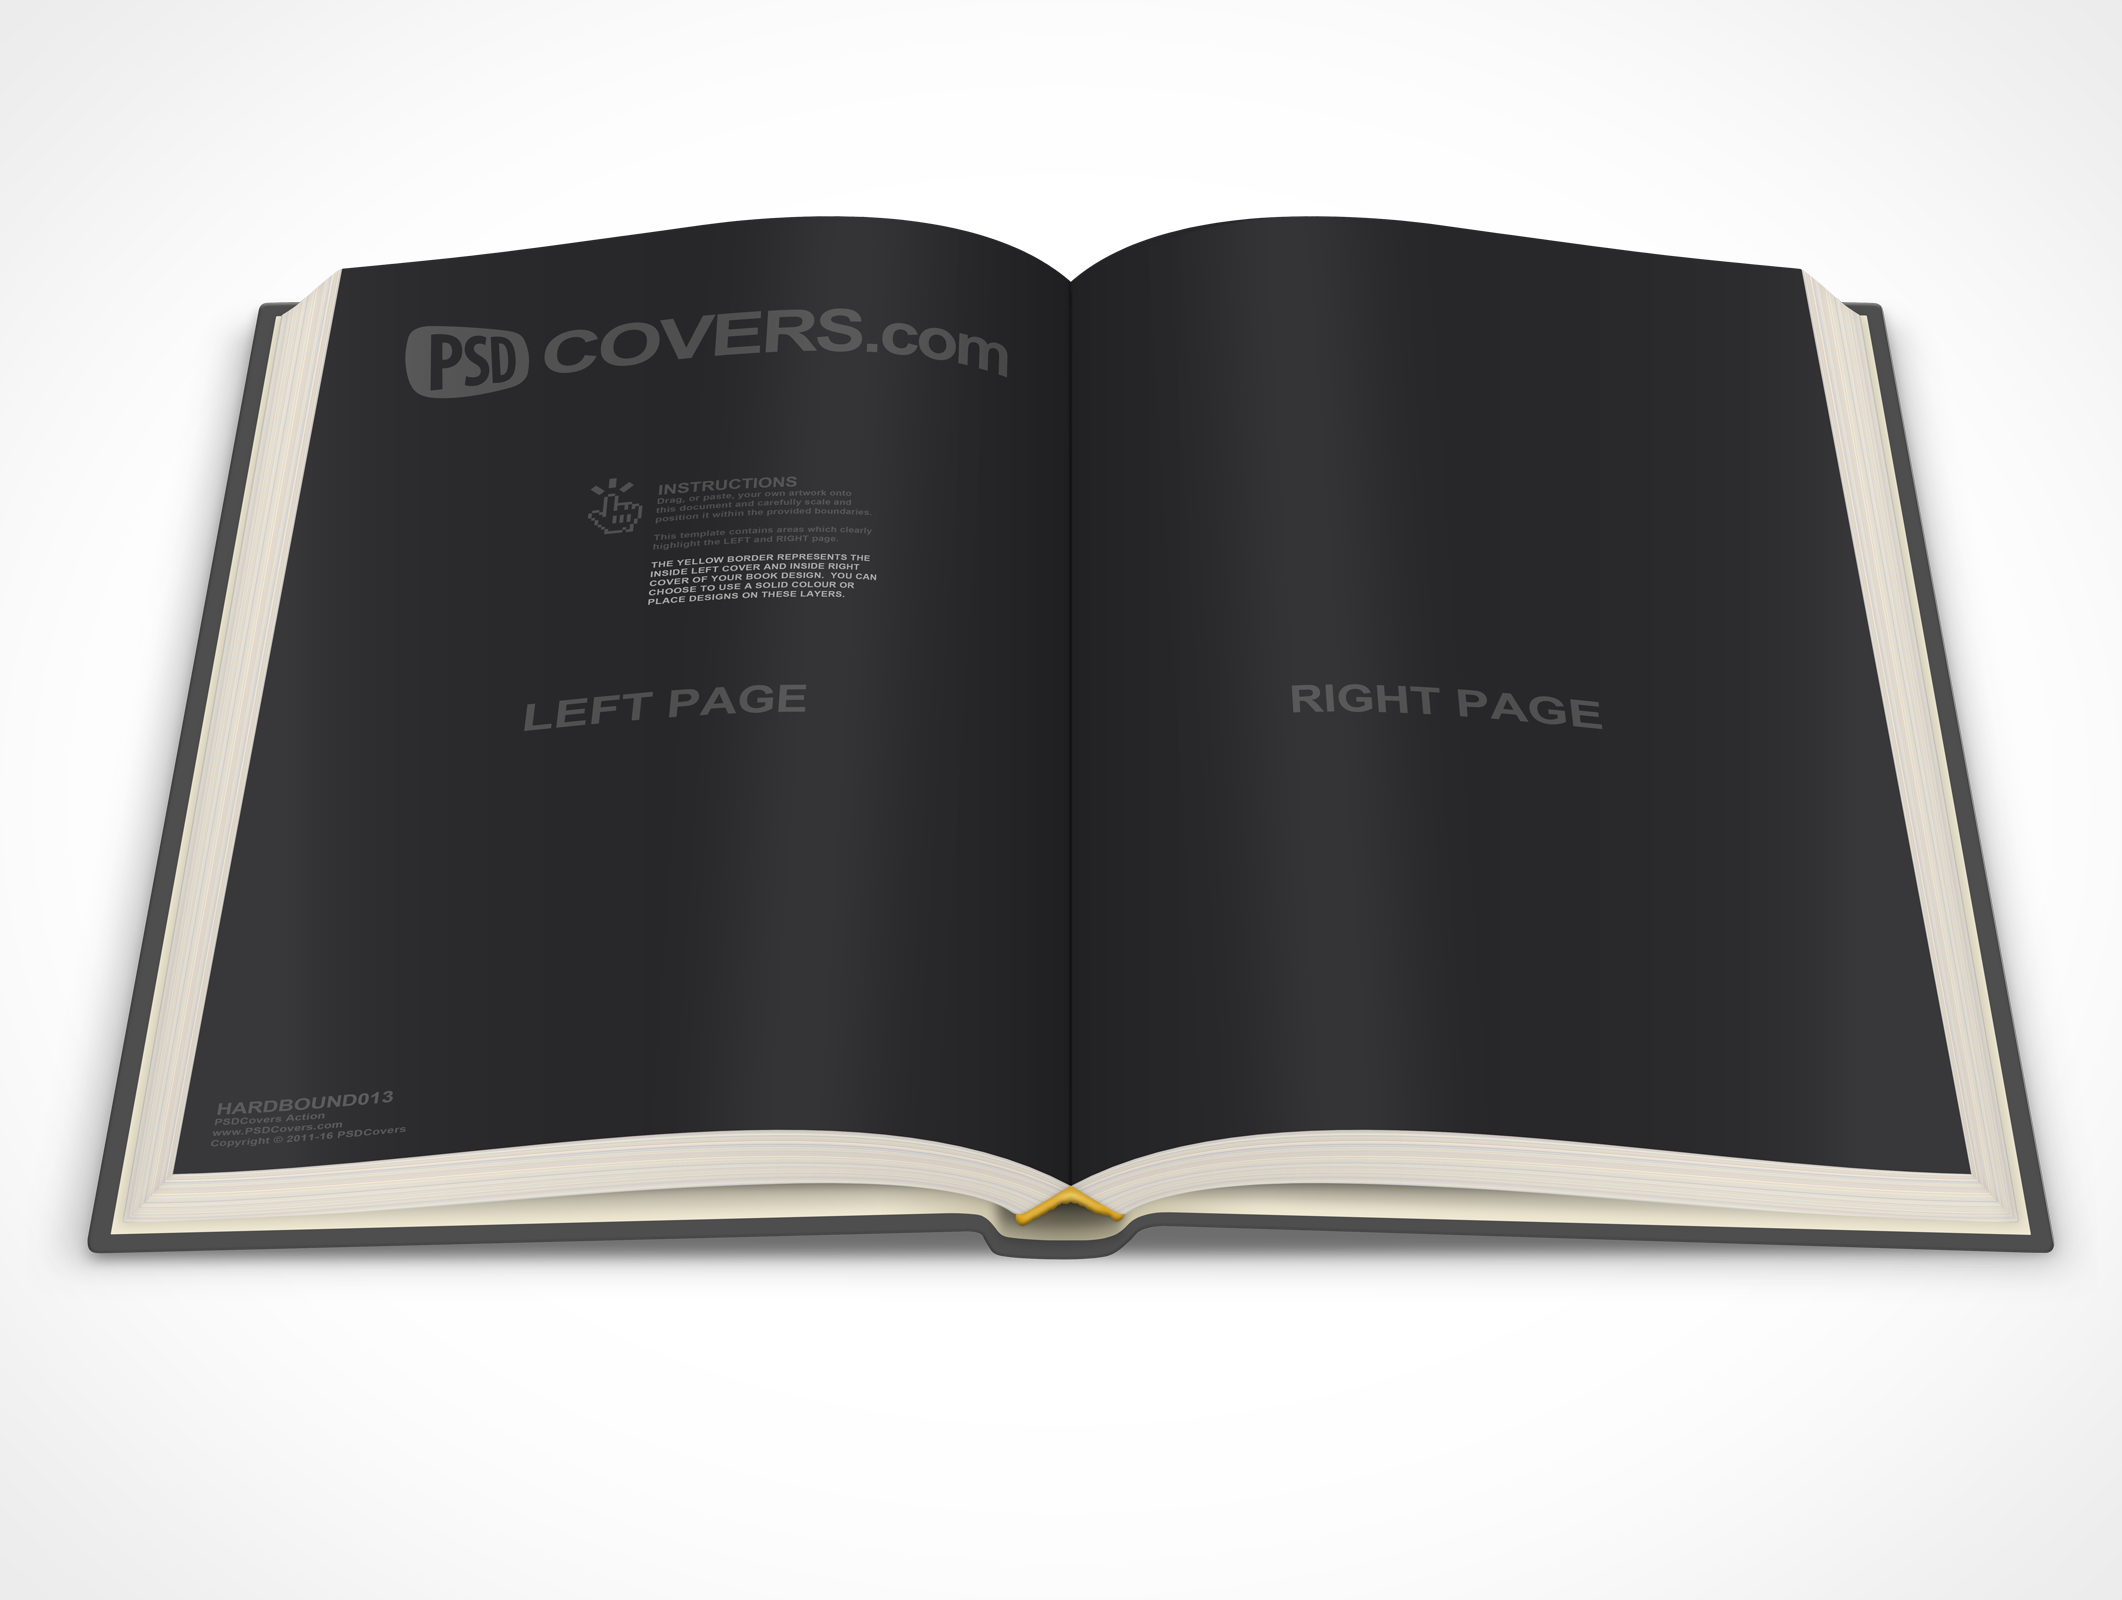 PSDcovers childrens hardbound book 45° looking down